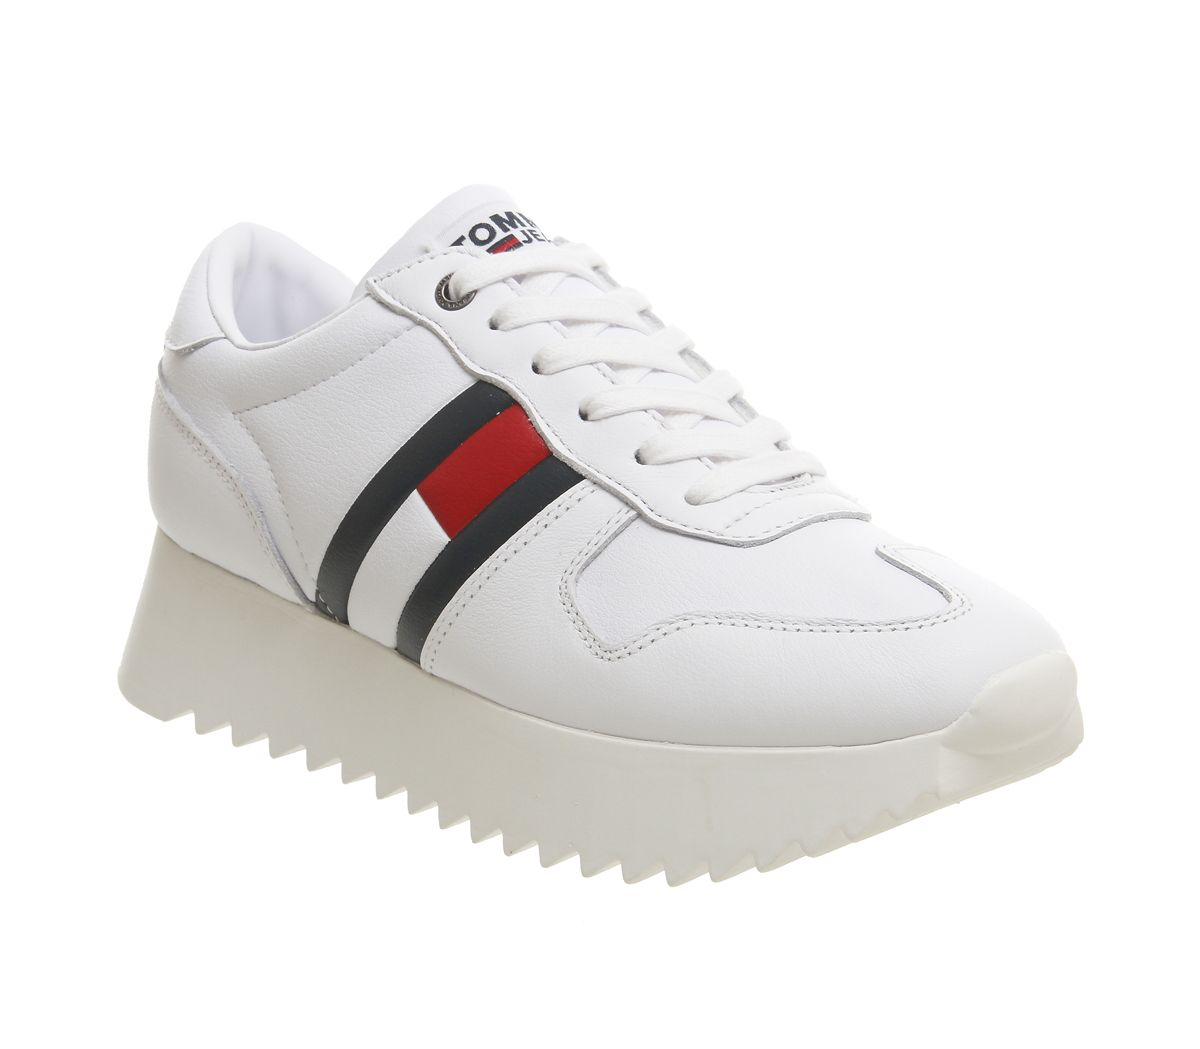 ac747432 Tommy Hilfiger High Cleated Sneaker White Red Blue - Hers trainers